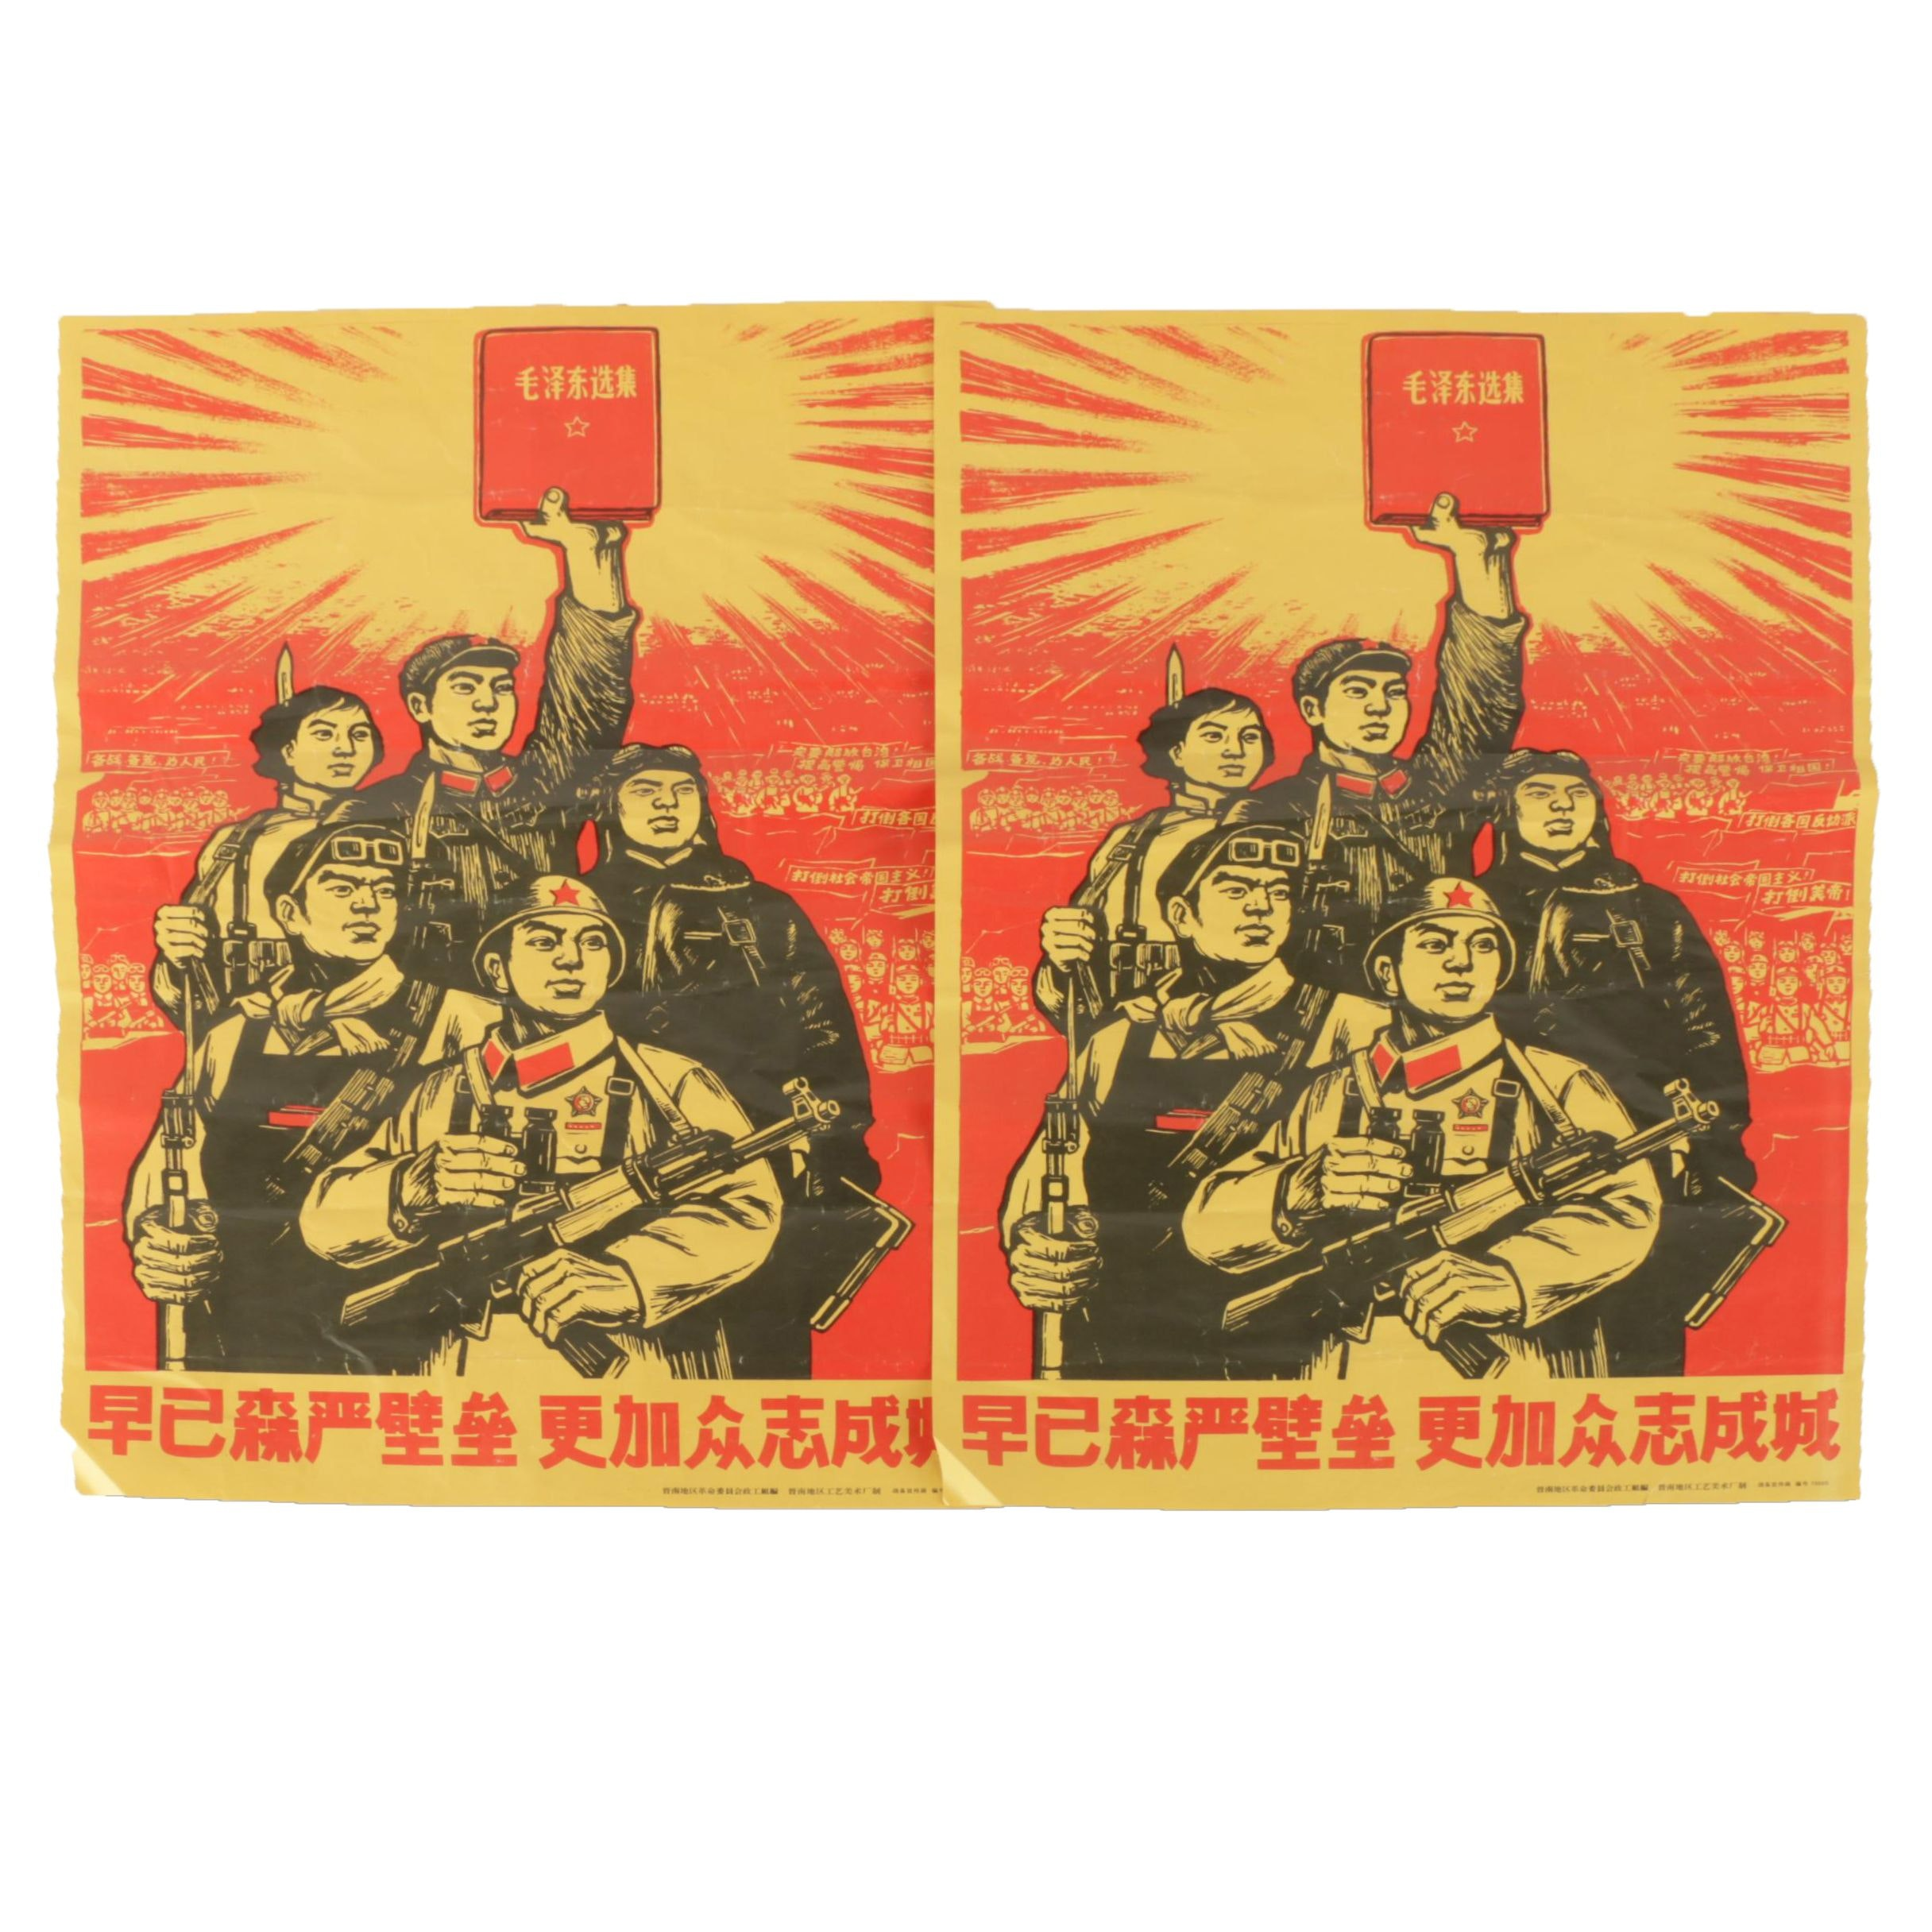 Two Vintage Chinese Propaganda Posters